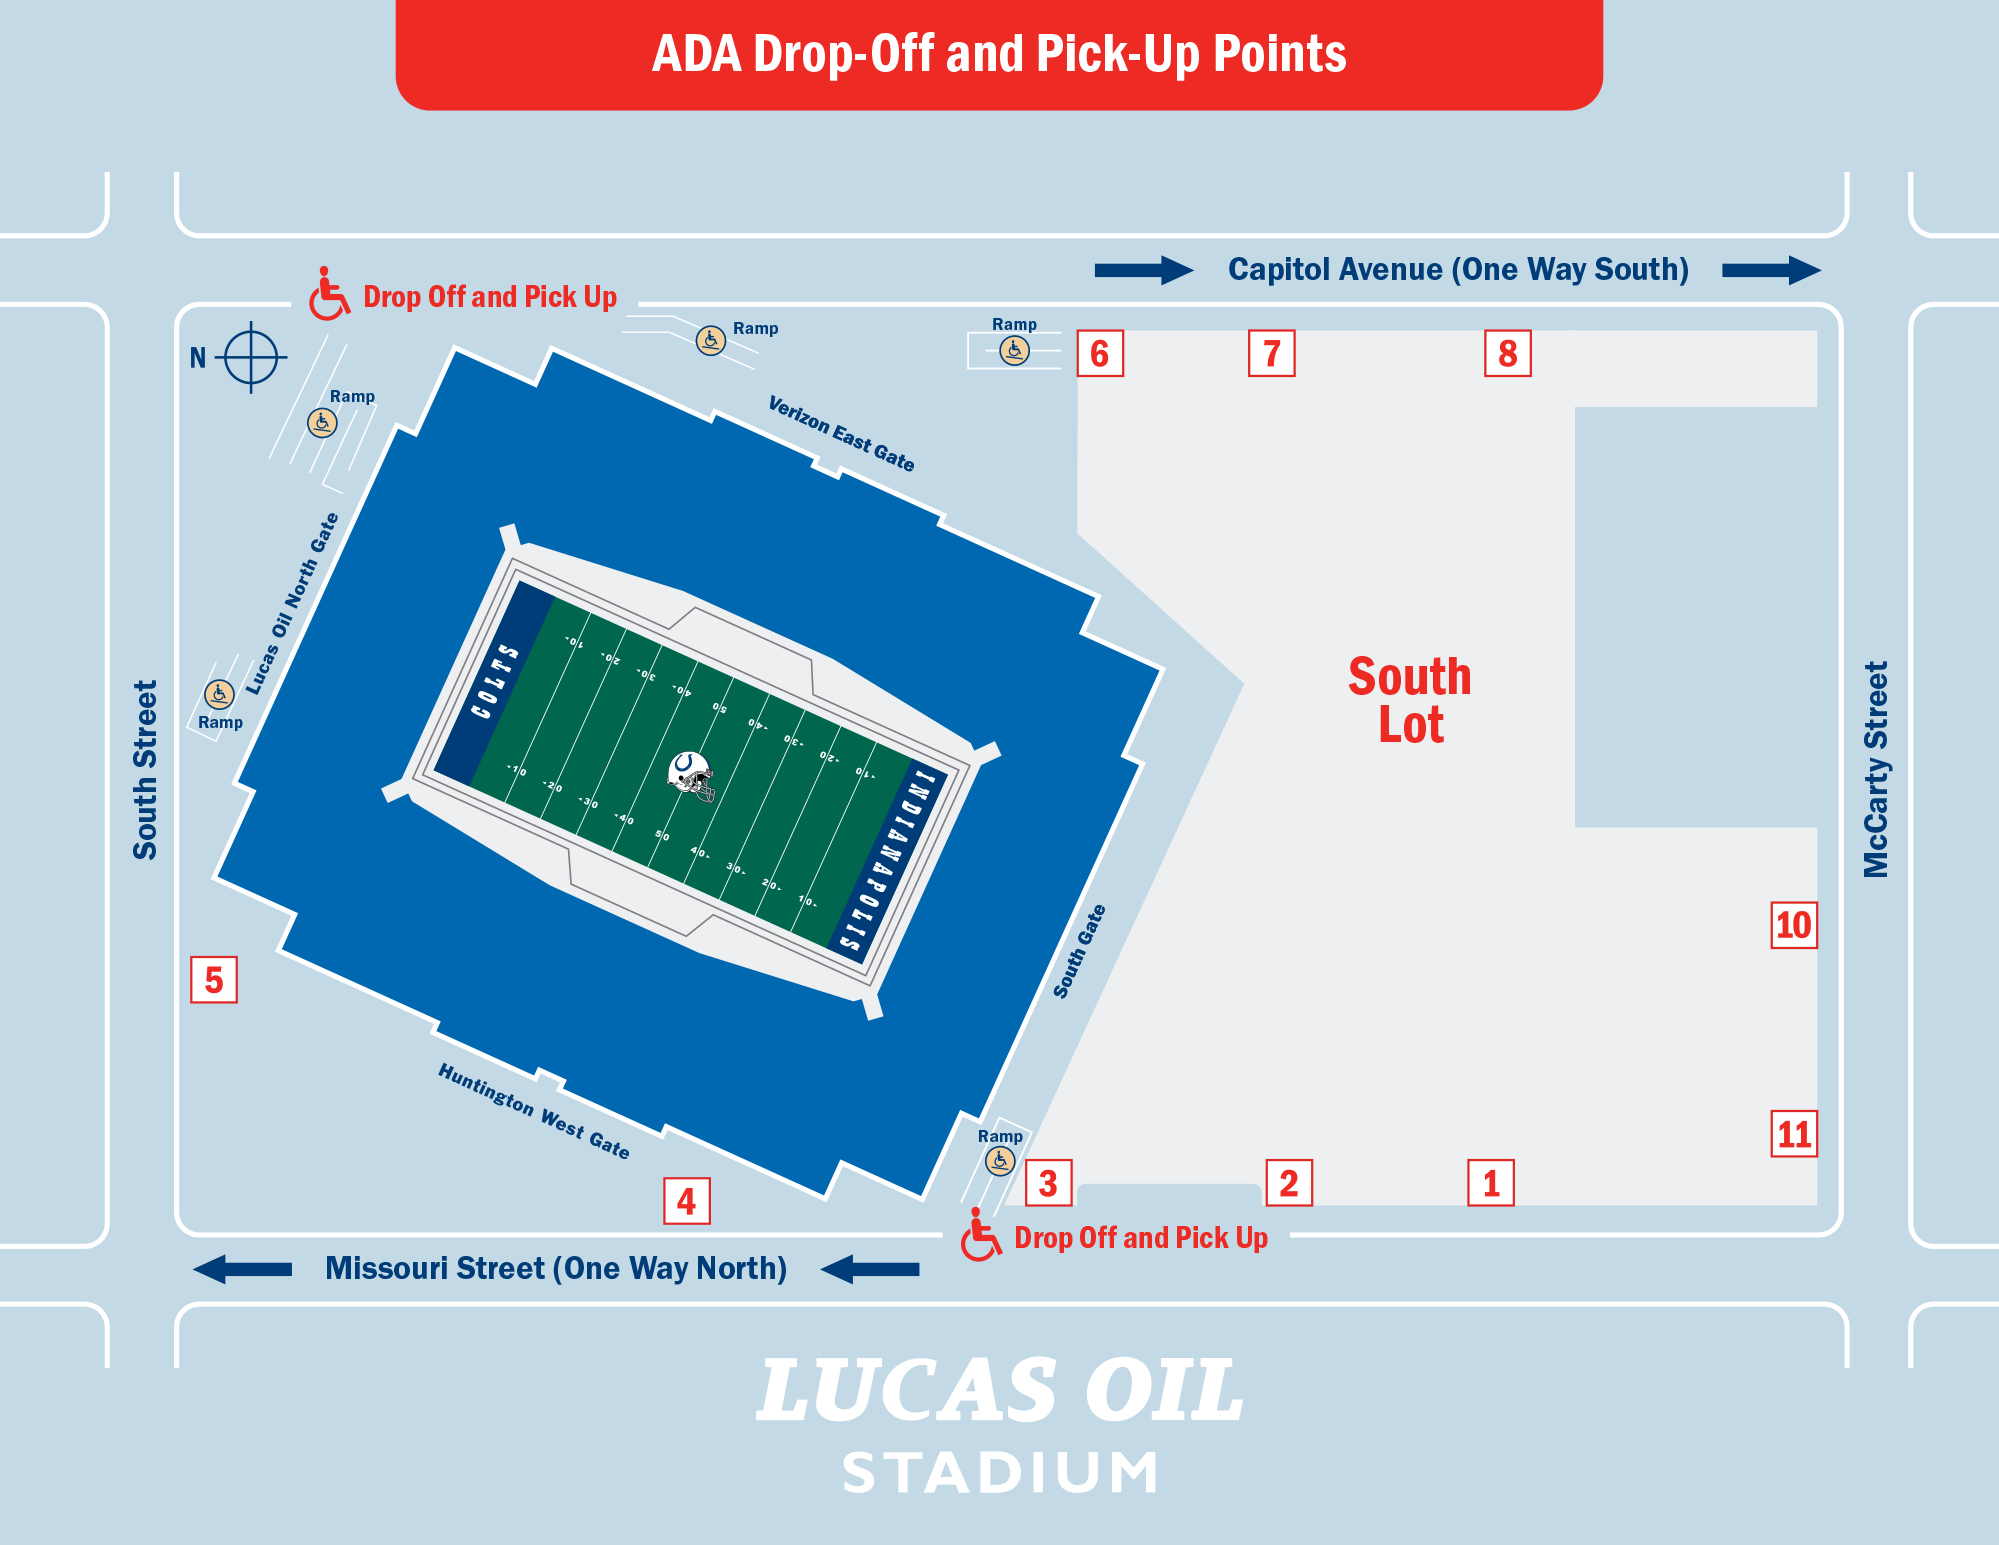 Lucas Oil Stadium ADA Drop-Off and Pick-Up Points